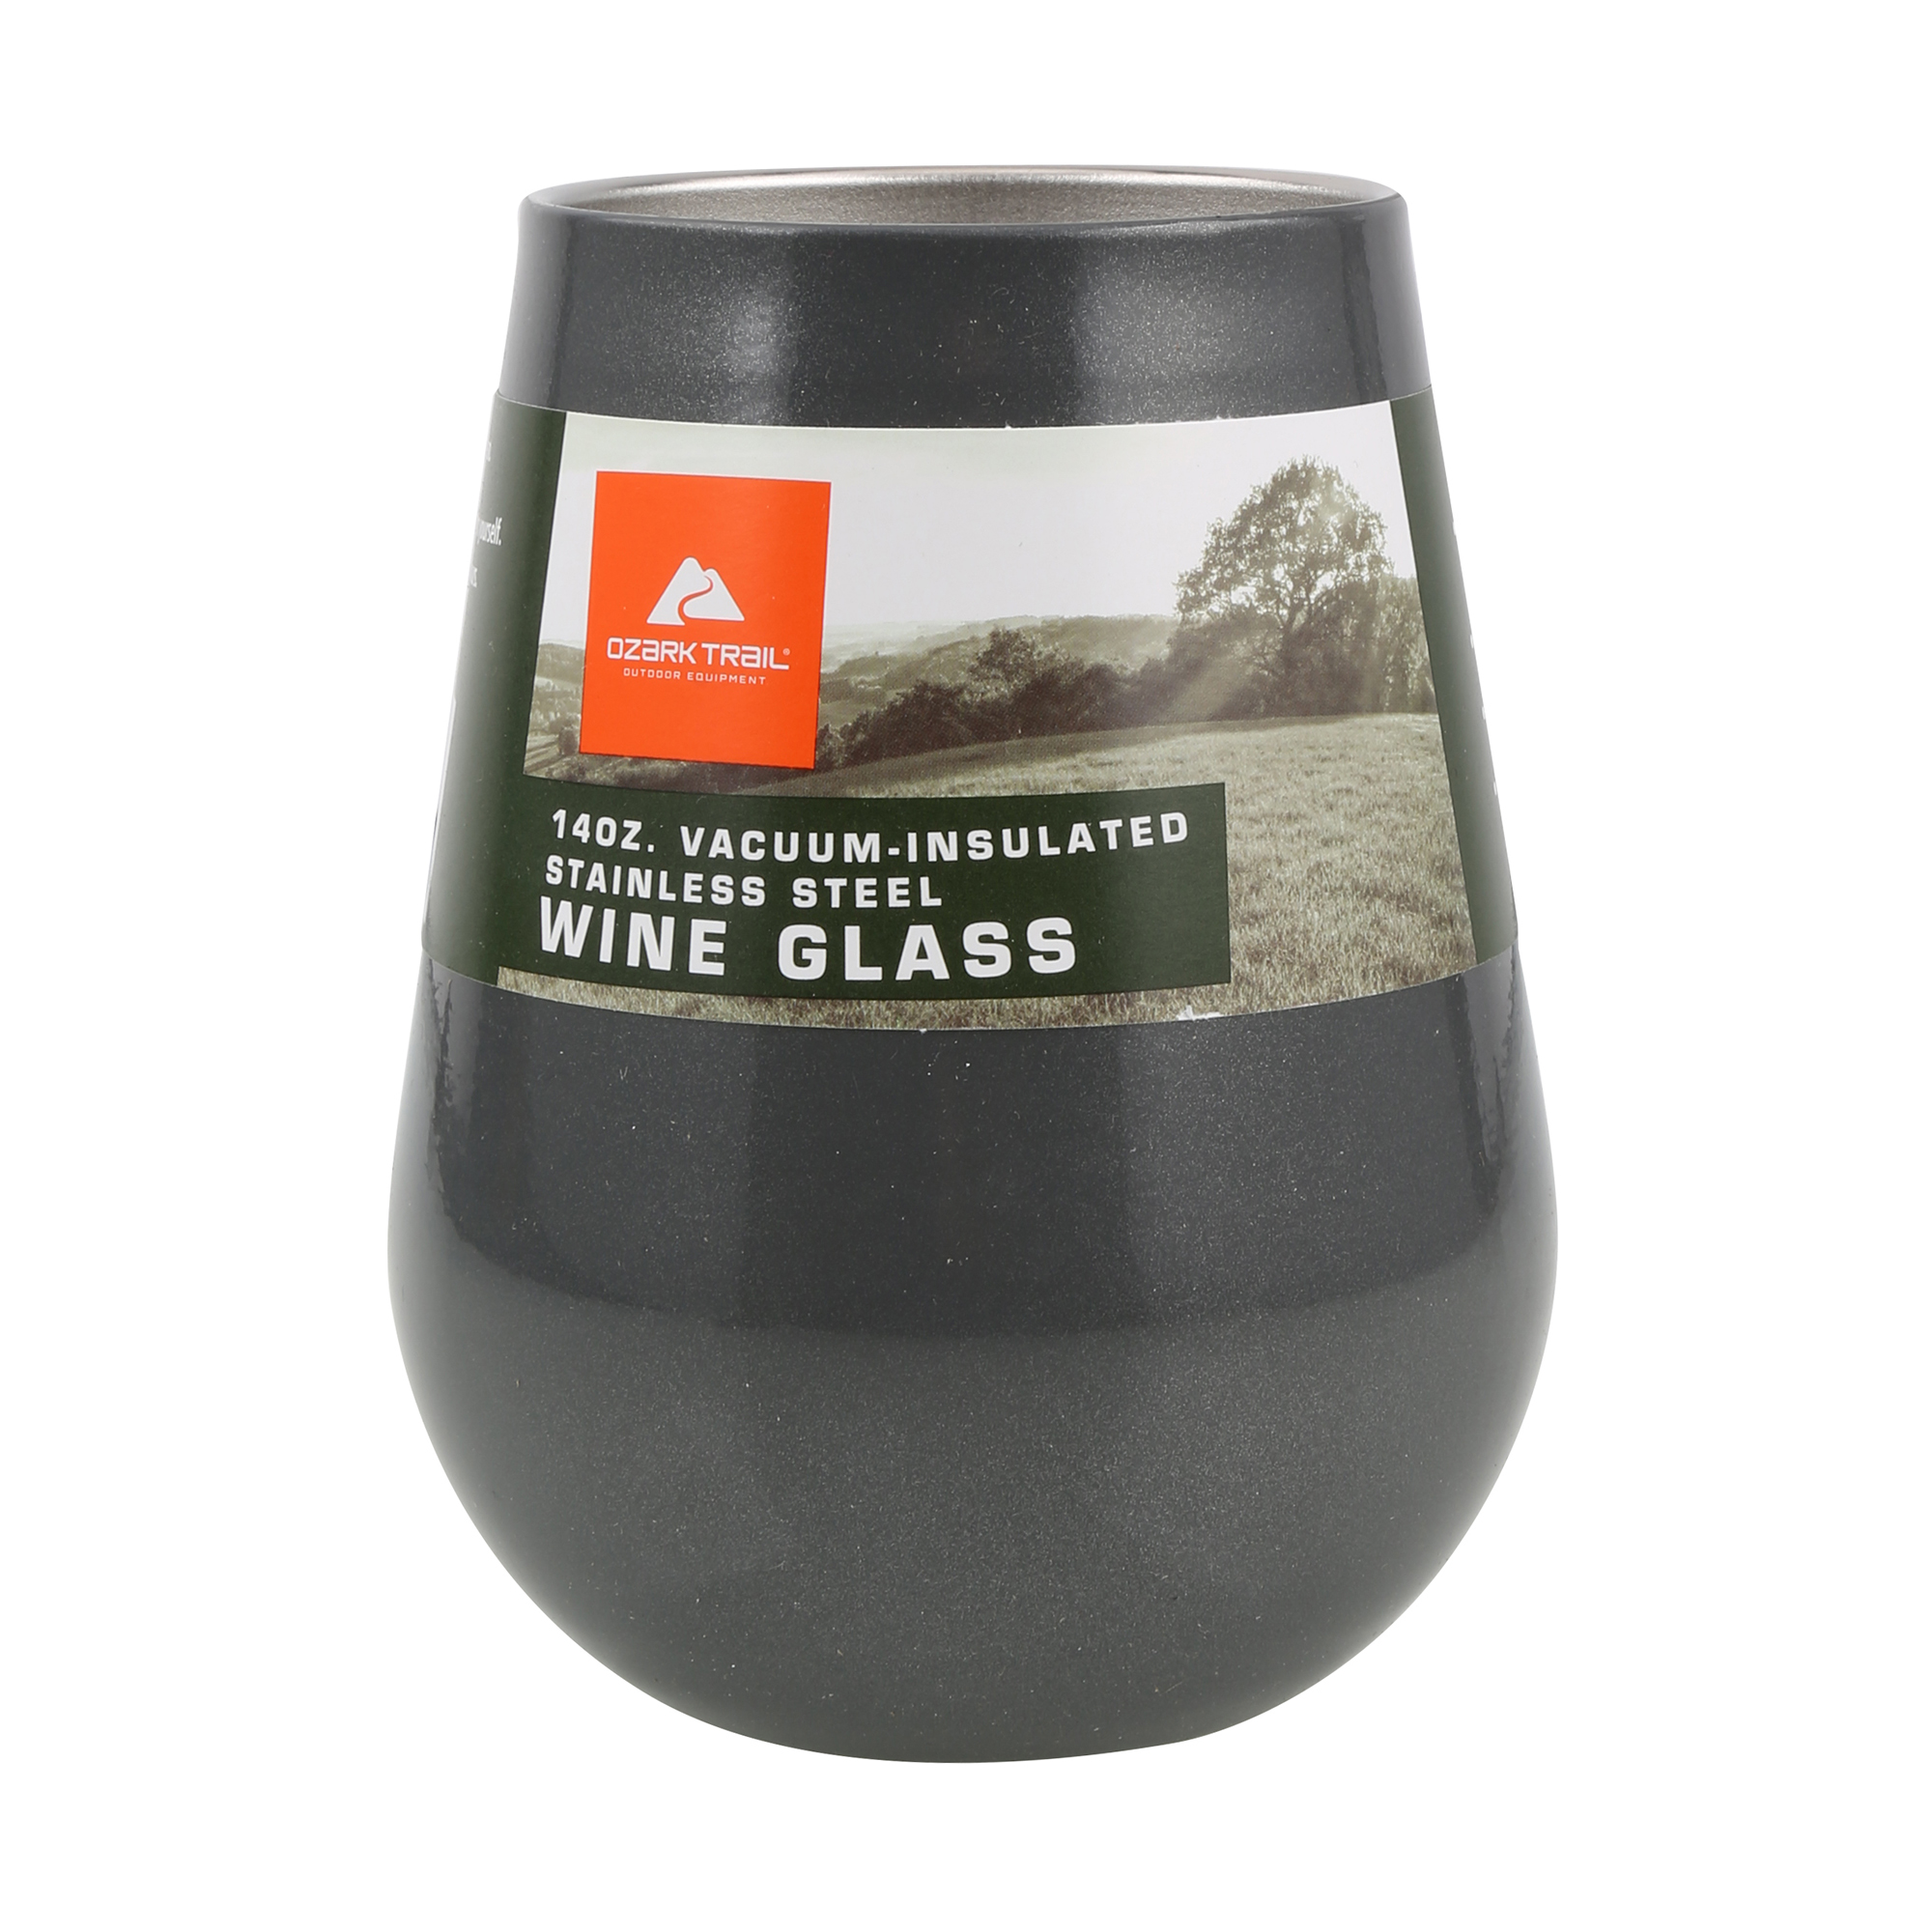 Ozark Trail Vacuum Insulated Wine Glass